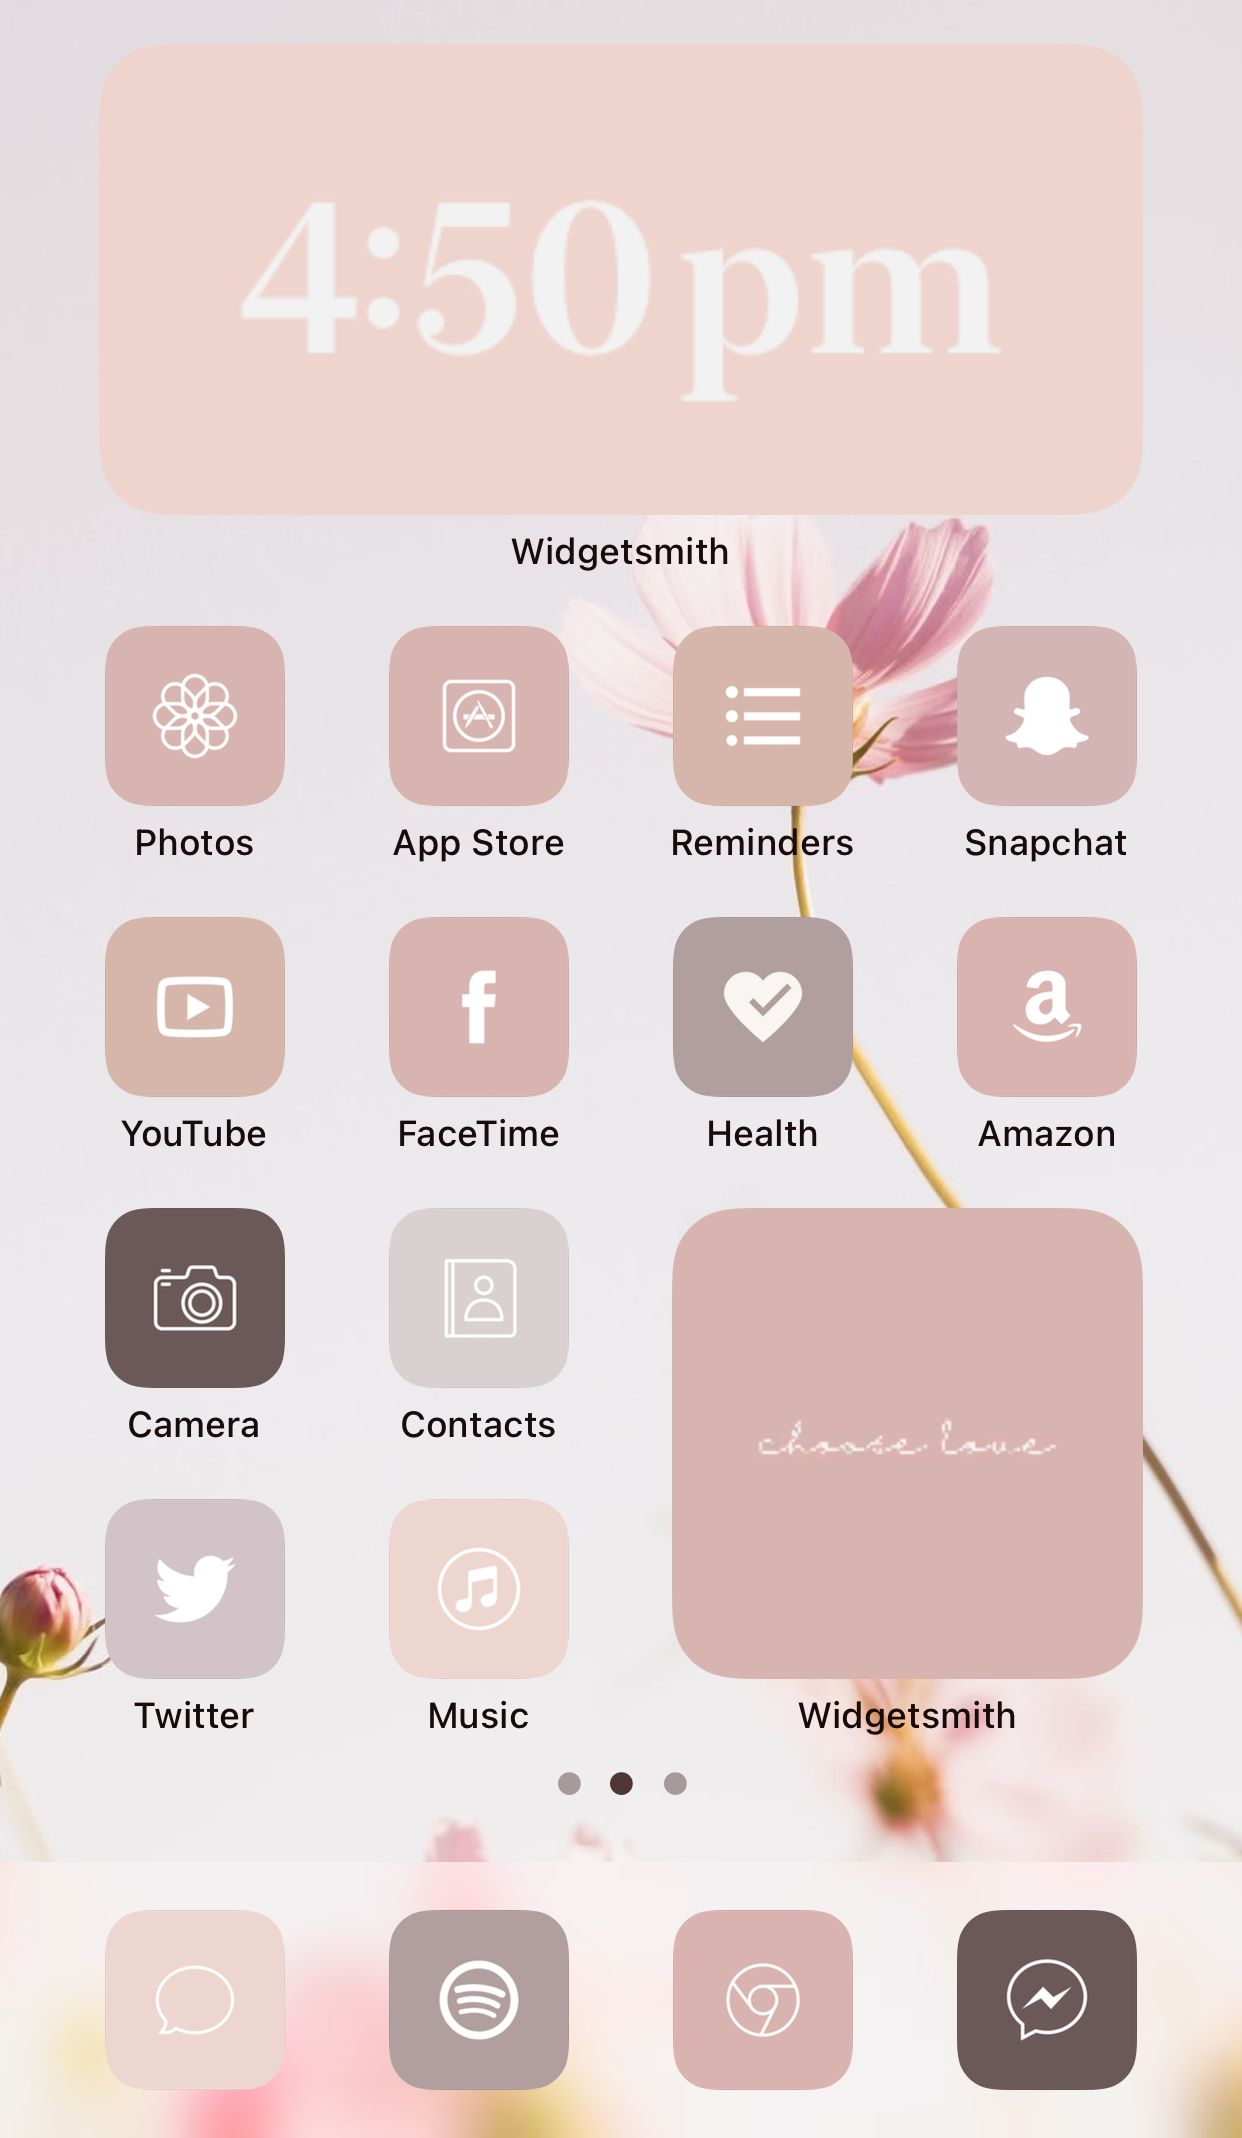 Aesthetic Iphone App Icon Home Screen Ideas Inspo Inspiration App Covers App Icons Ios 14 Widget In 2020 Iphone Home Screen Layout Ios App Icon Iphone App Design